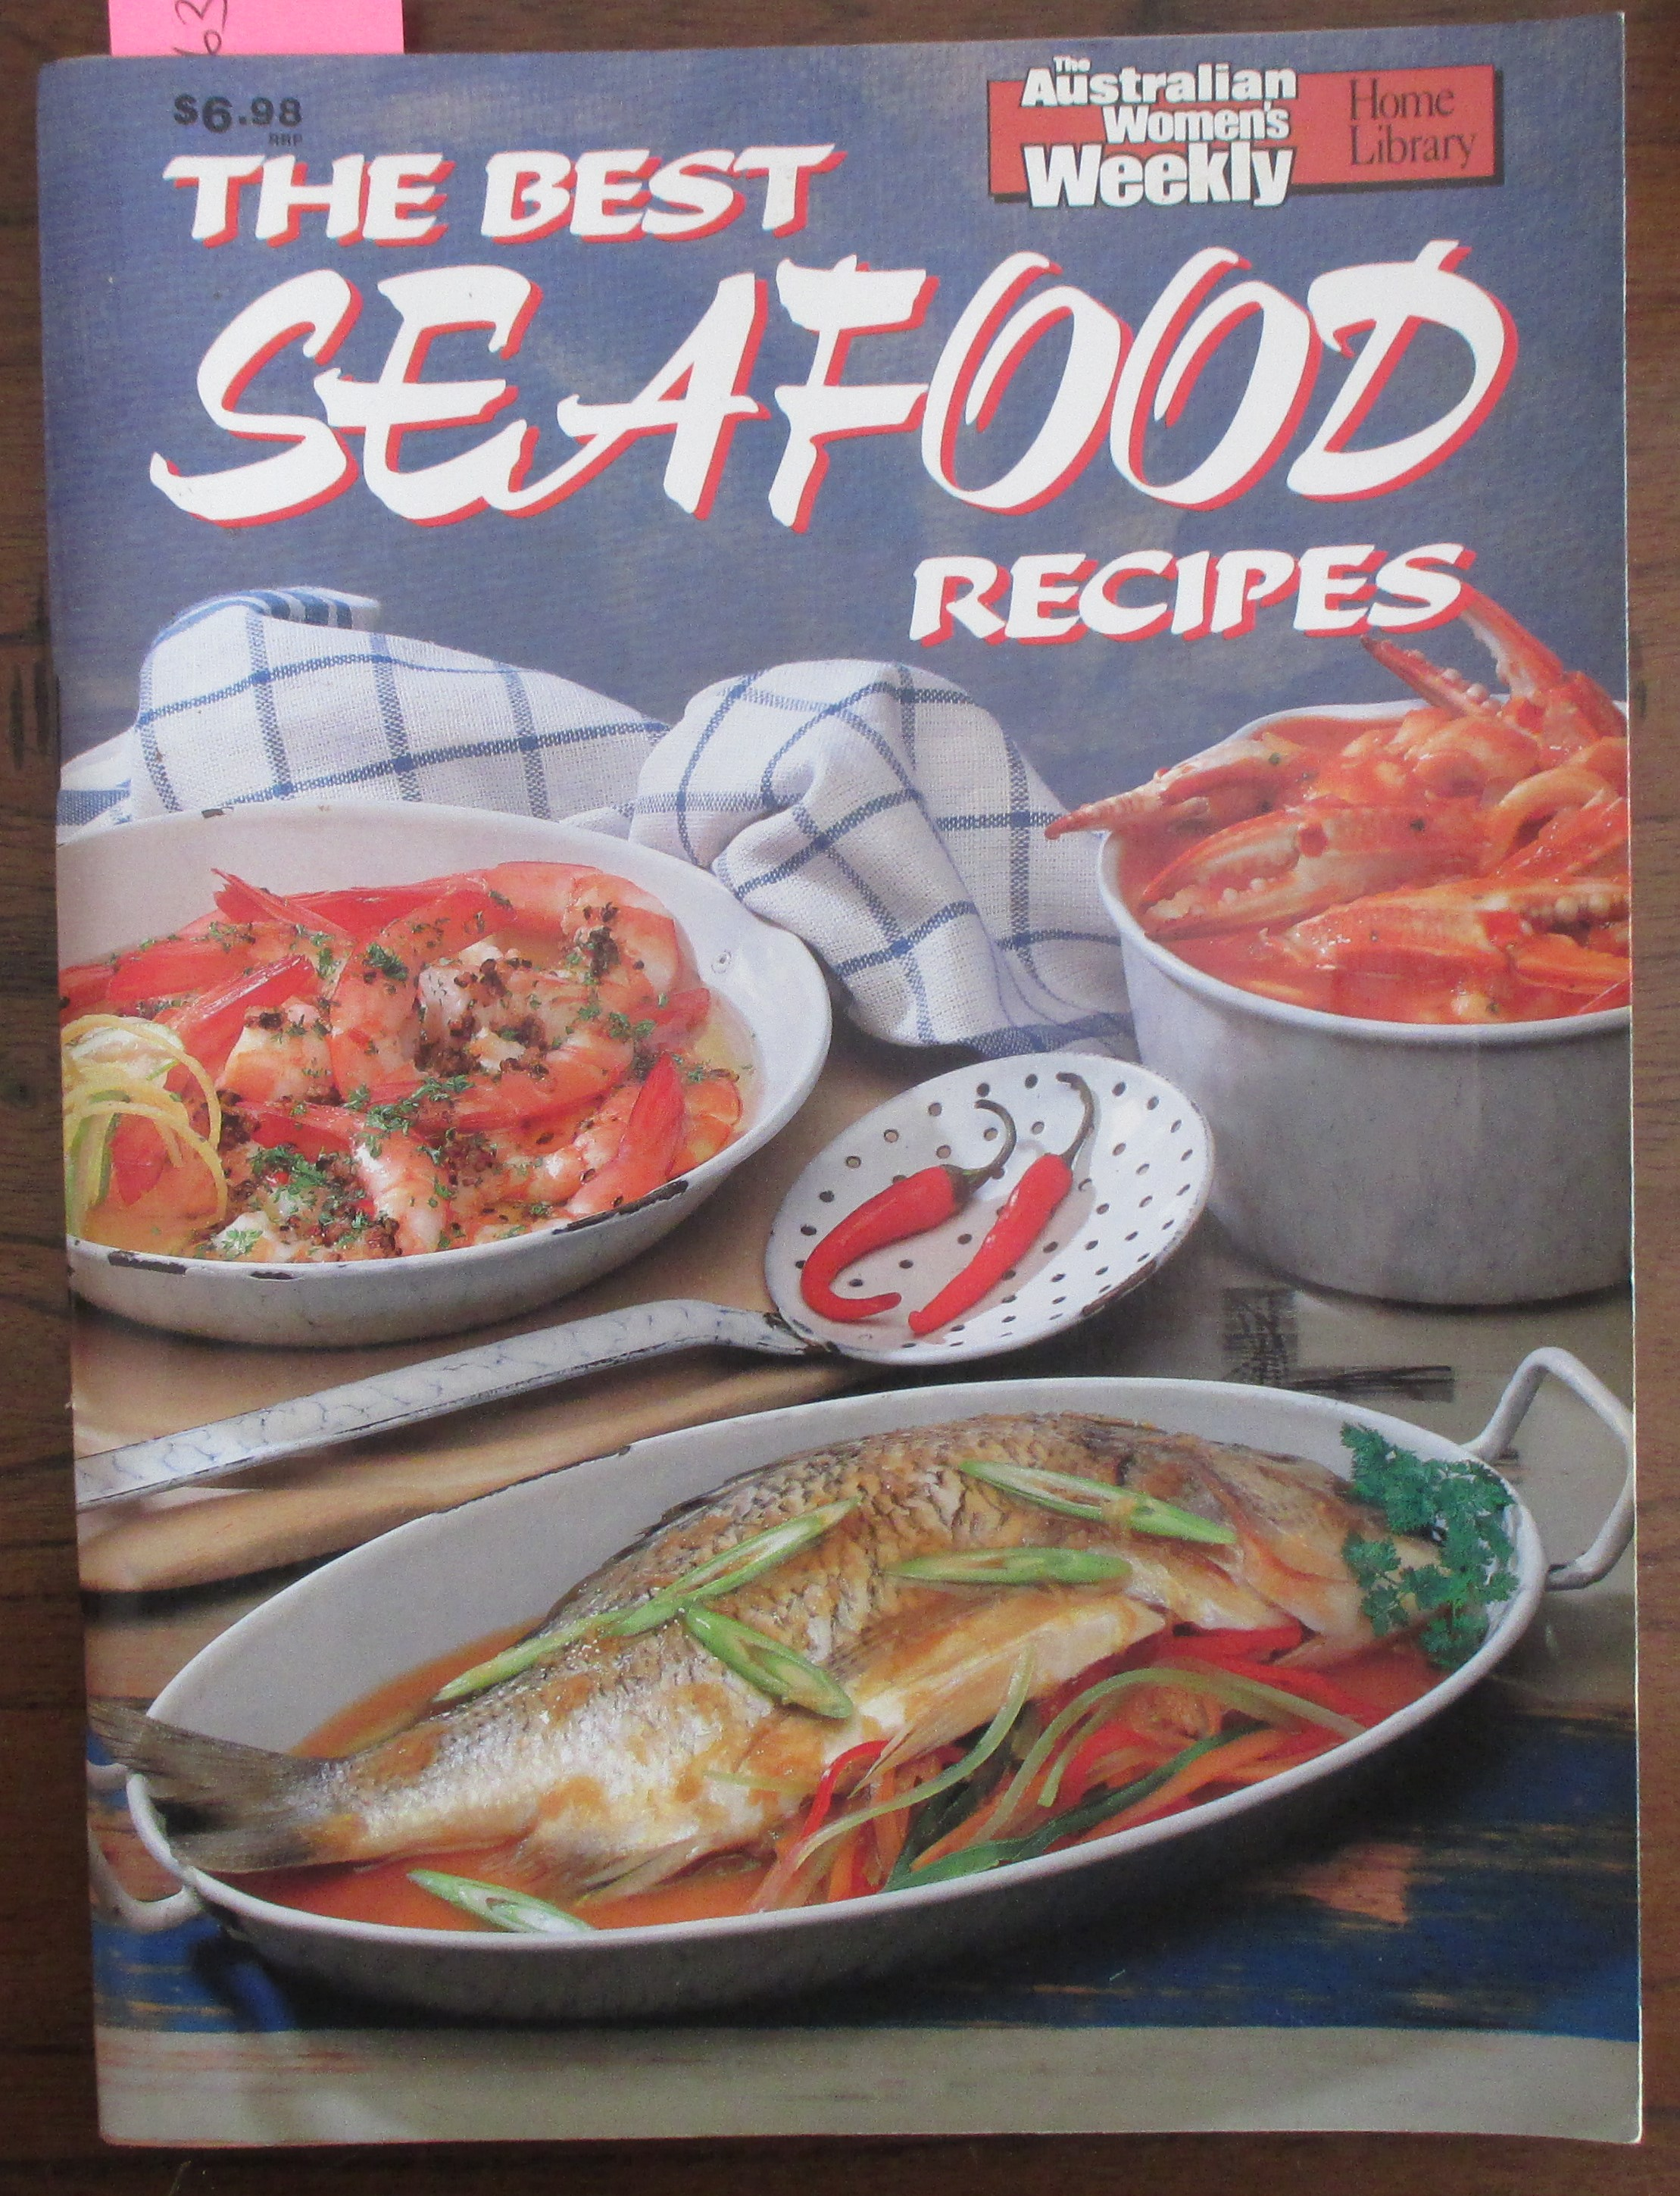 Image for Best Seafood Recipes, The (The Australian Women's Weekly Home Library)